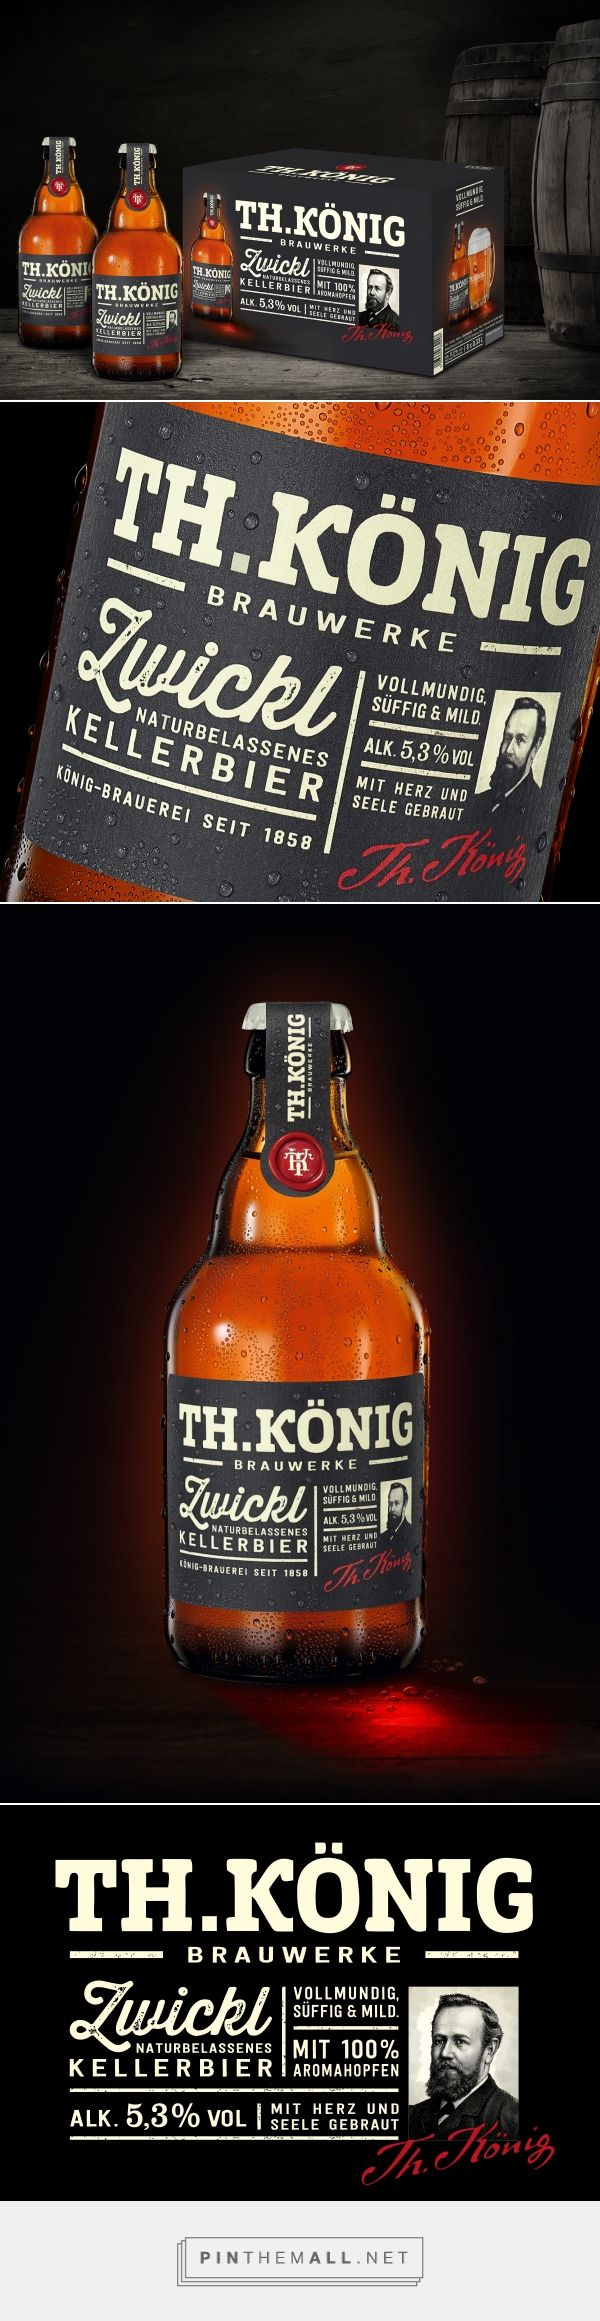 Th. Koenig Specialty Beer - Packaging of the World - Creative Package Design Gallery - http://www.packagingoftheworld.com/2016/08/th-koenig-specialty-beer.html